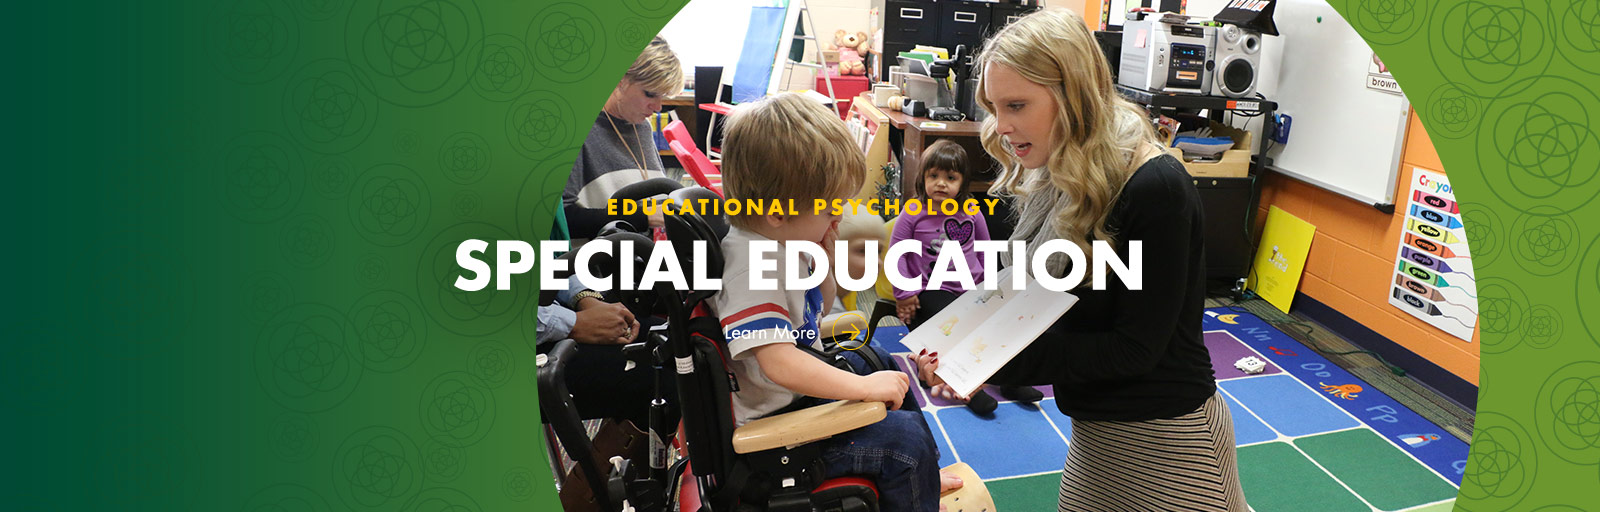 soe-mc_edp-Special-Education